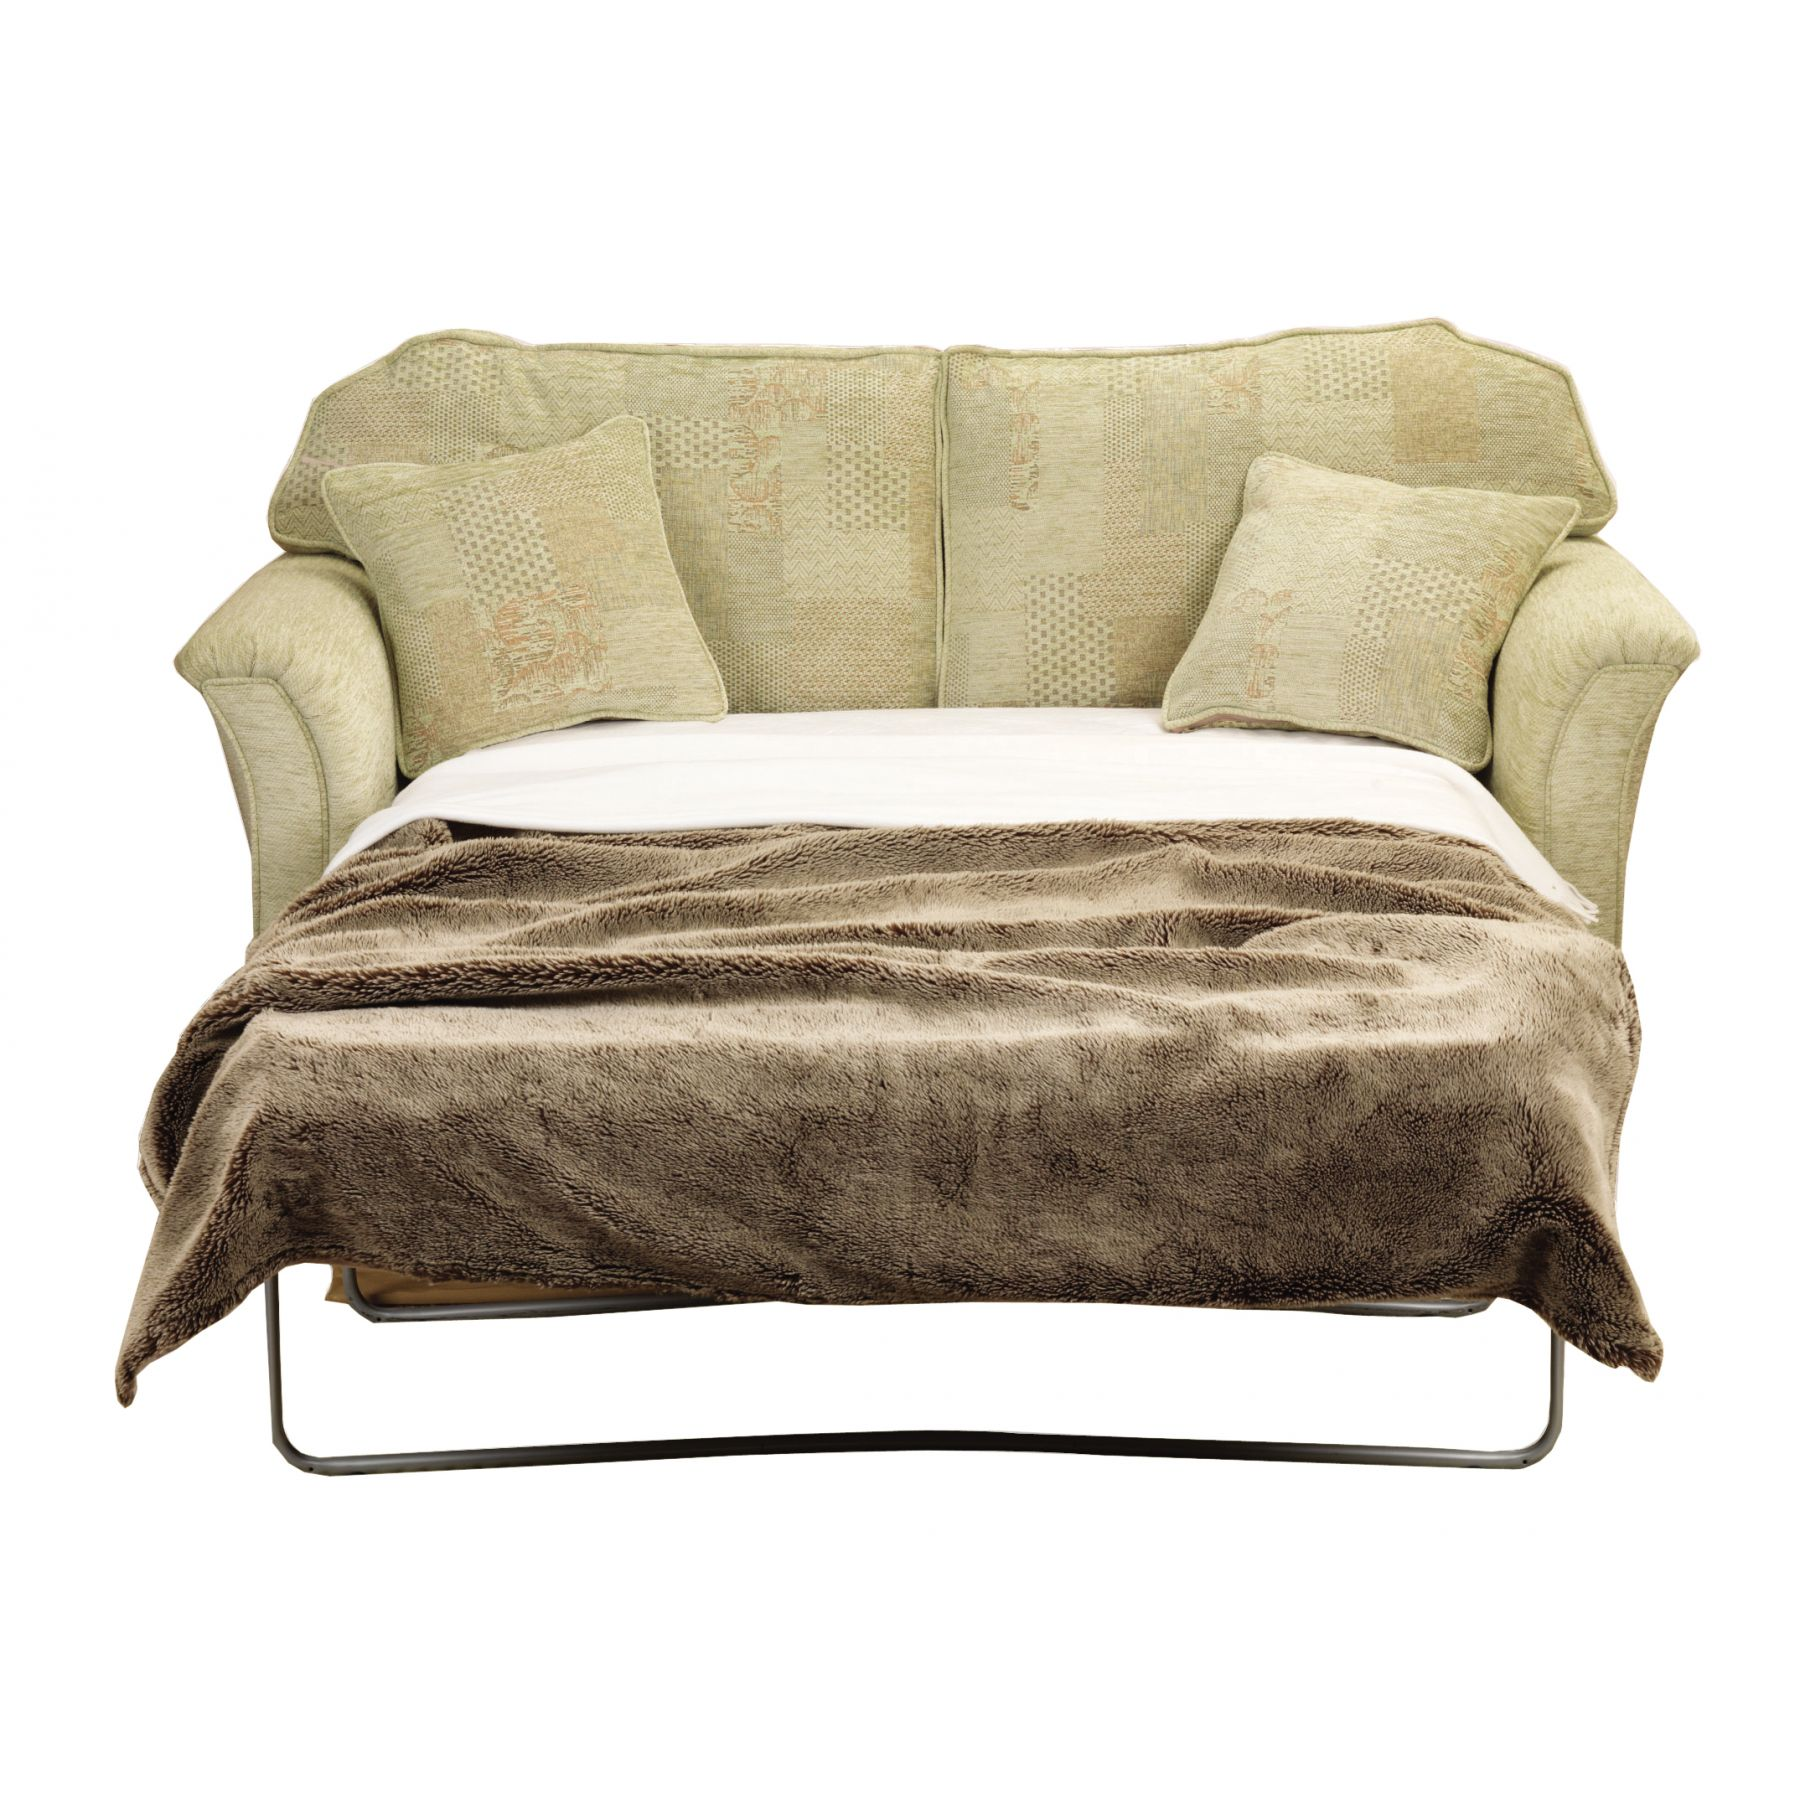 Unusual Sofas For Sale: Convertible Loveseat Sofa Bed With Chaise